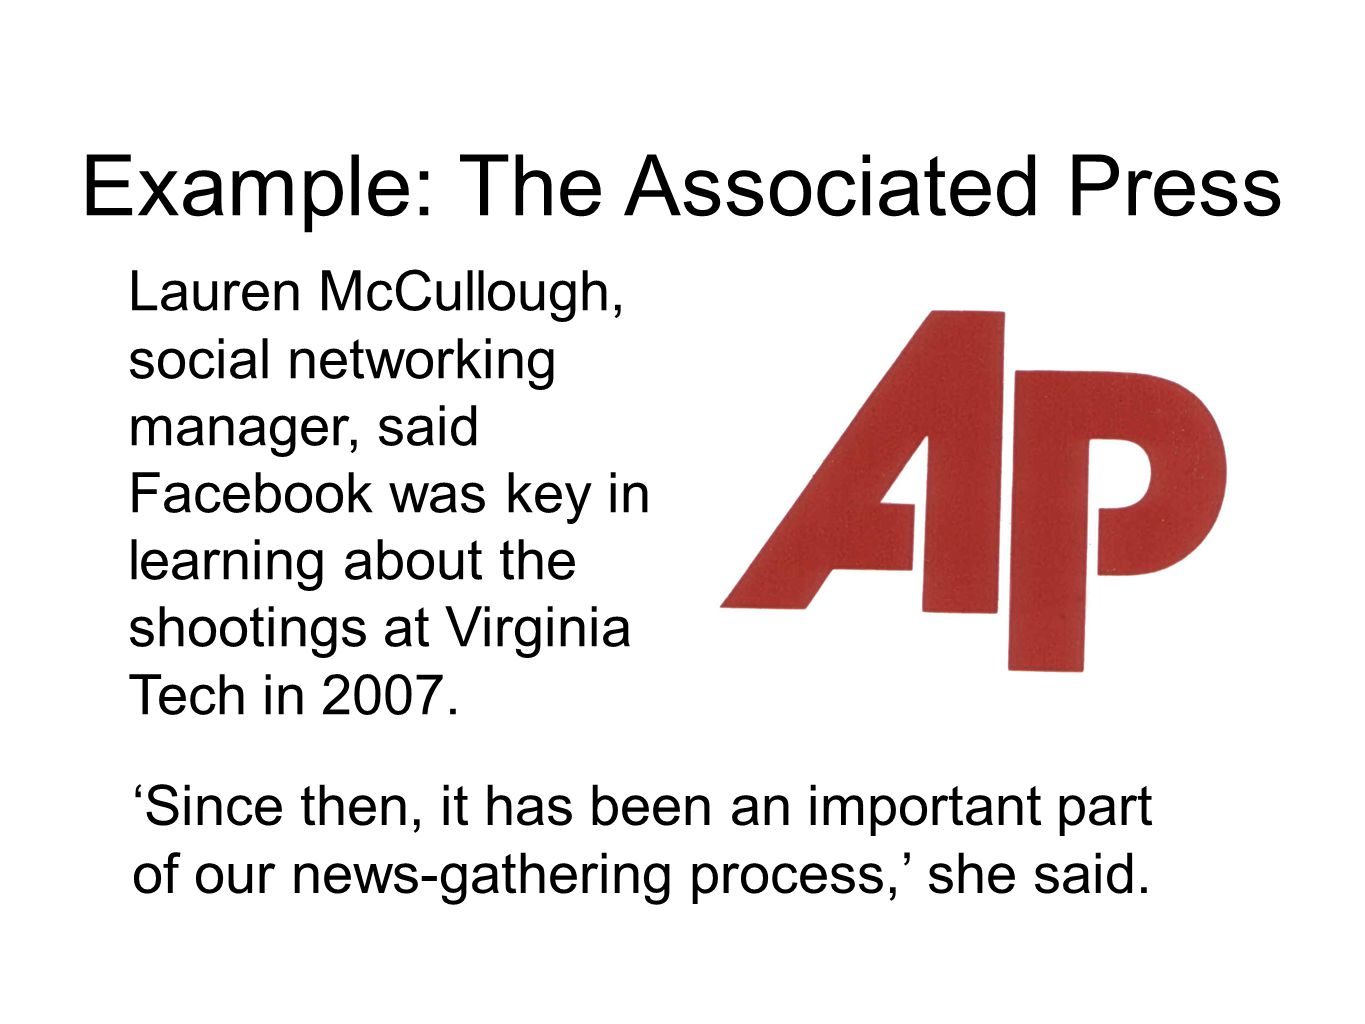 Example: The Associated Press Lauren McCullough, social networking manager, said Facebook was key in learning about the shootings at Virginia Tech in 2007.